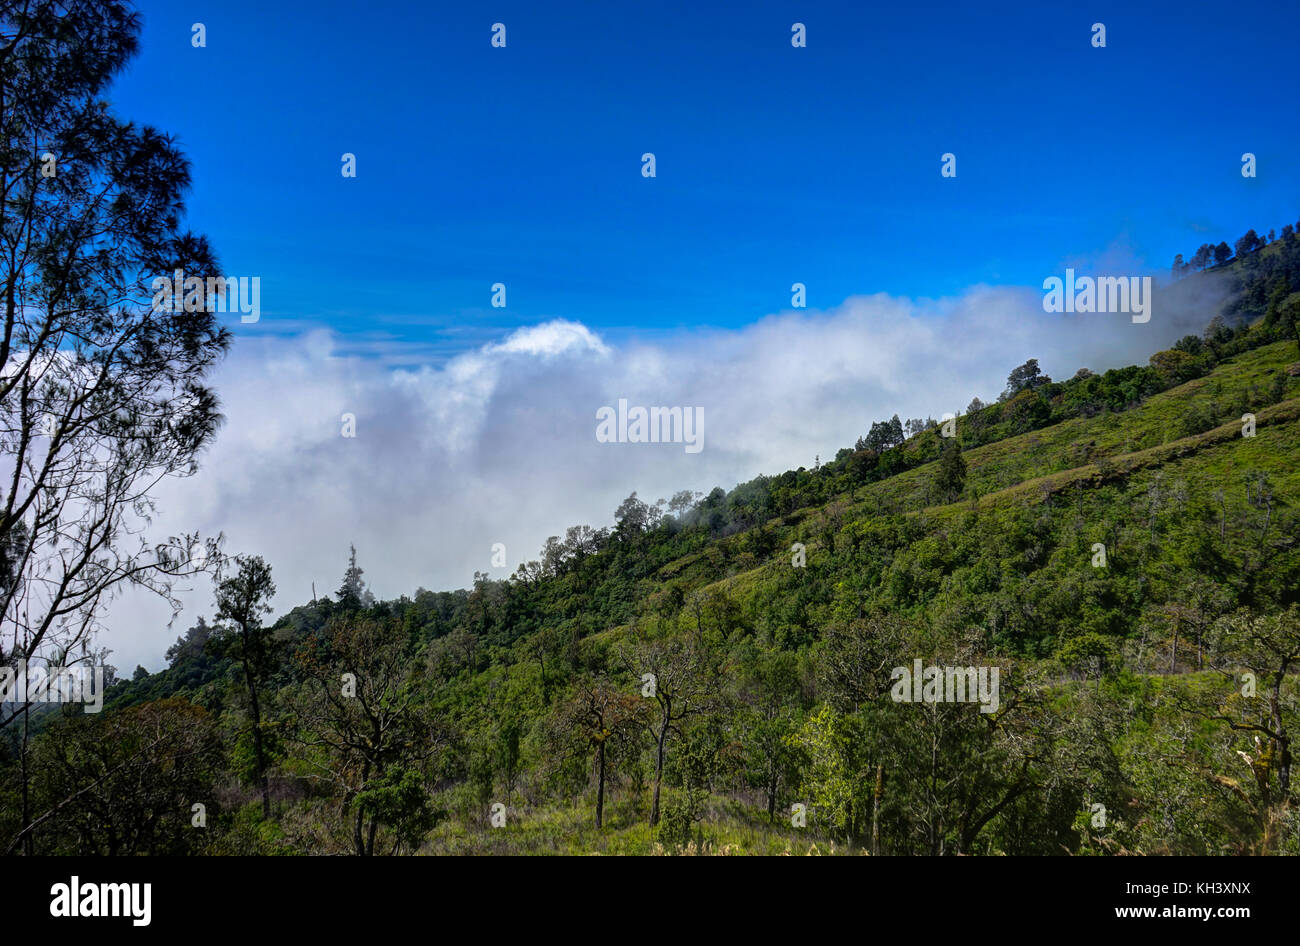 View over clouds from Mountain blue sky Mount Rinjani Lombok Ind - Stock Image